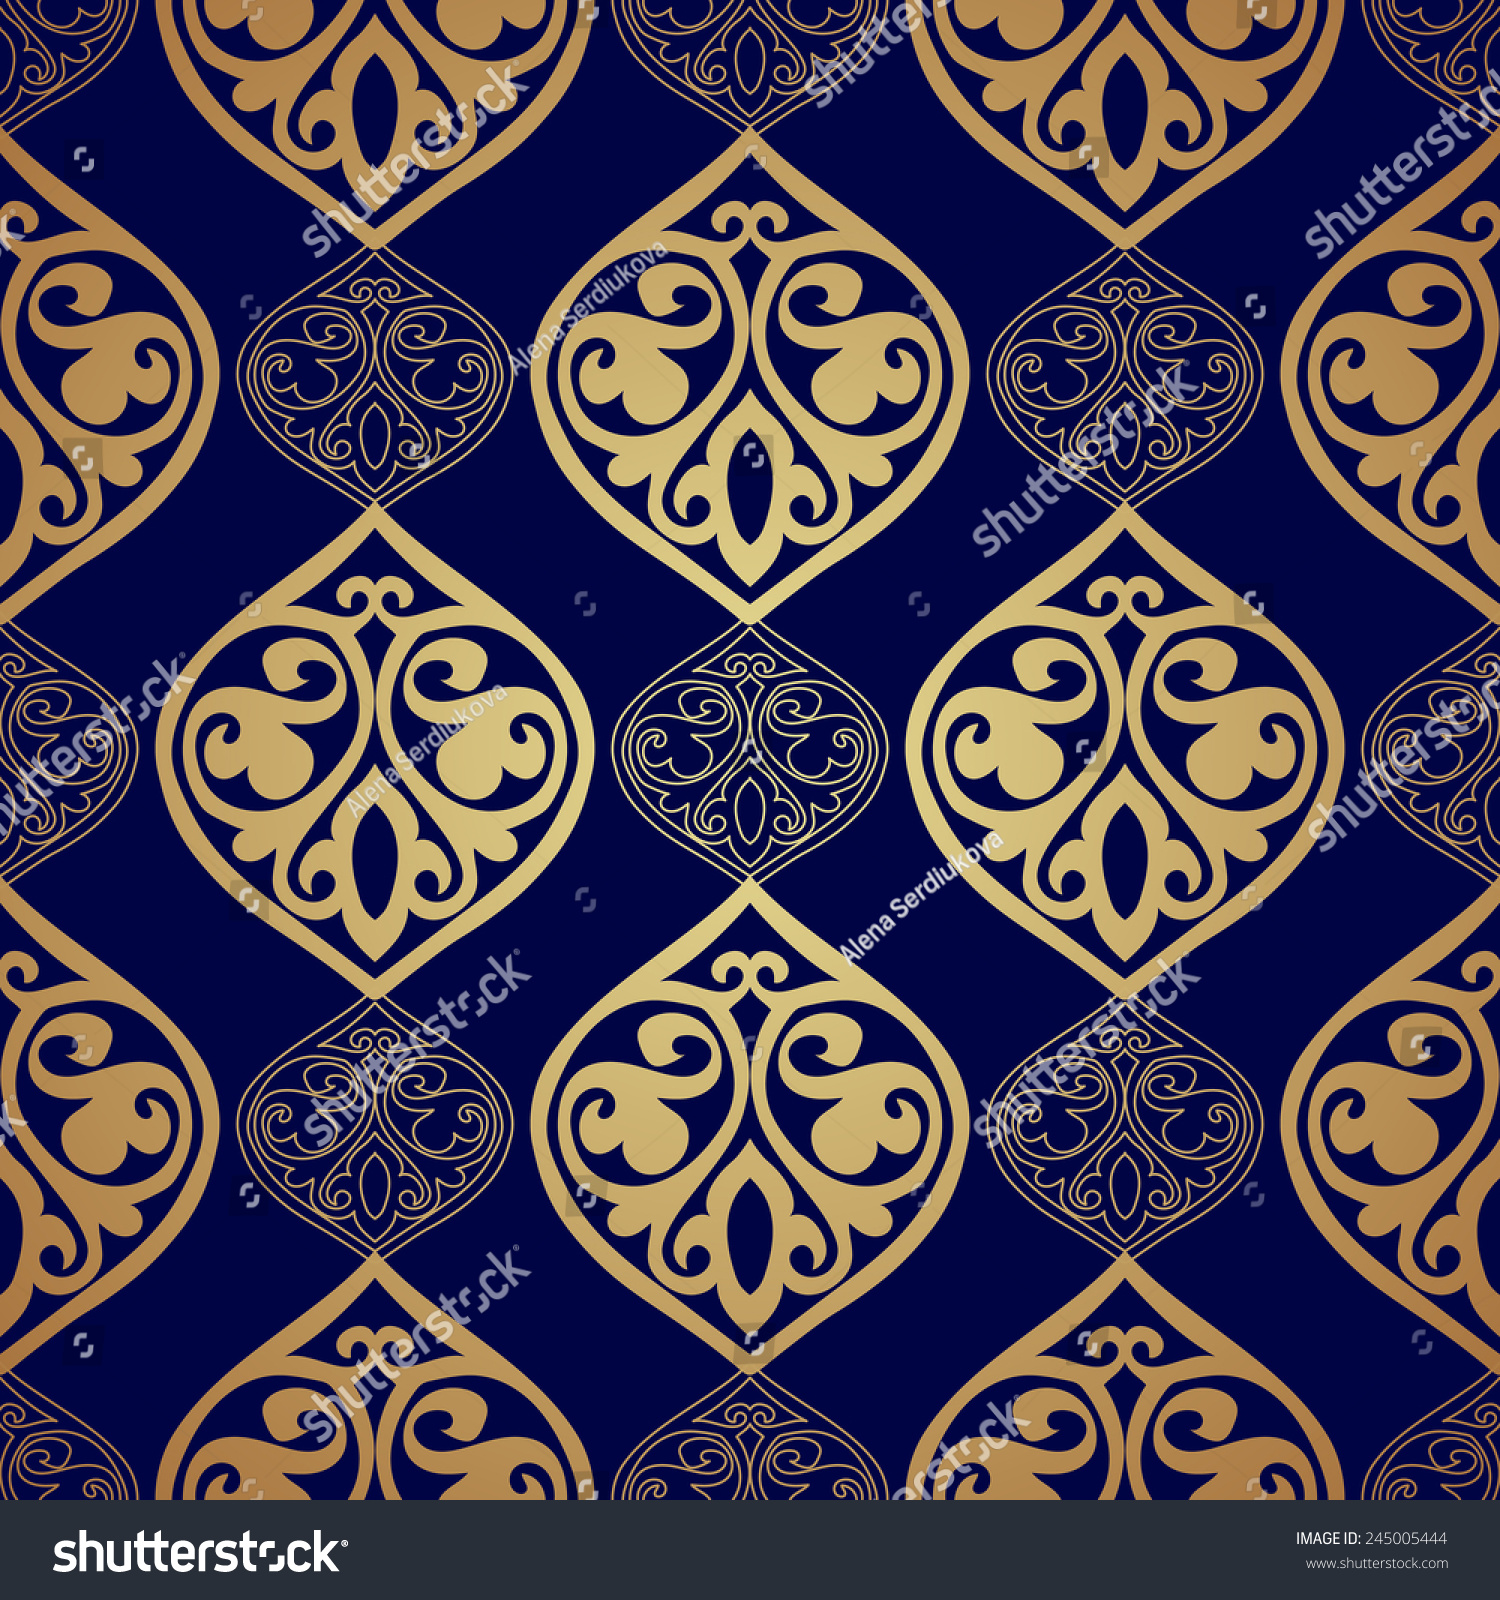 Blue Gold Luxury Damask Seamless Motif Stock Vector